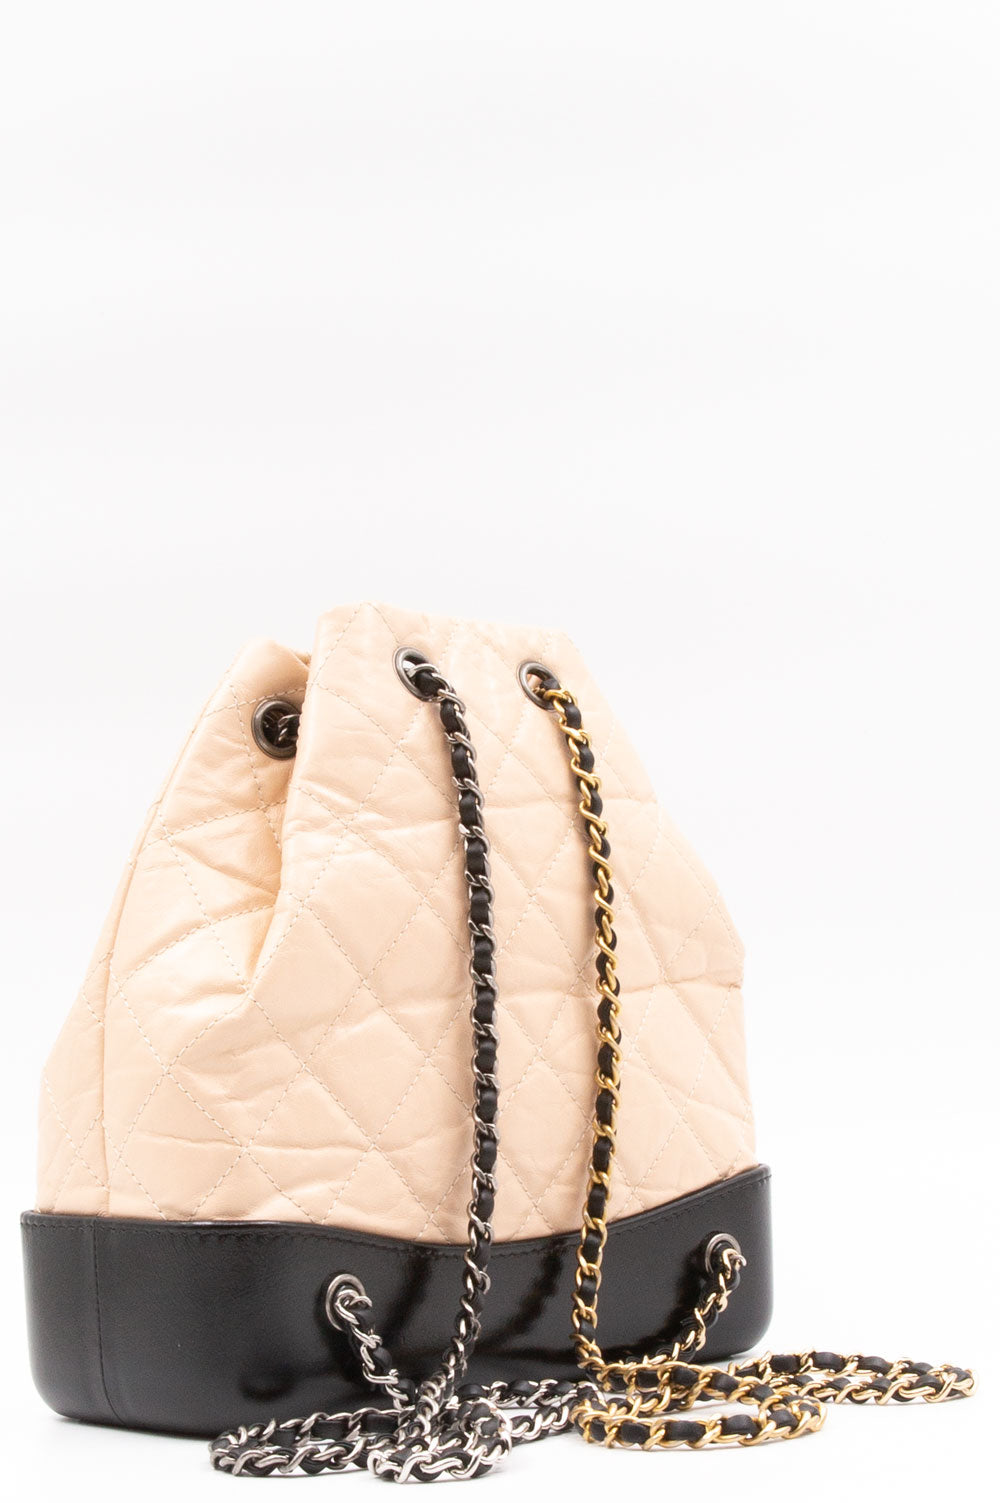 CHANEL Gabrielle Backpack Small